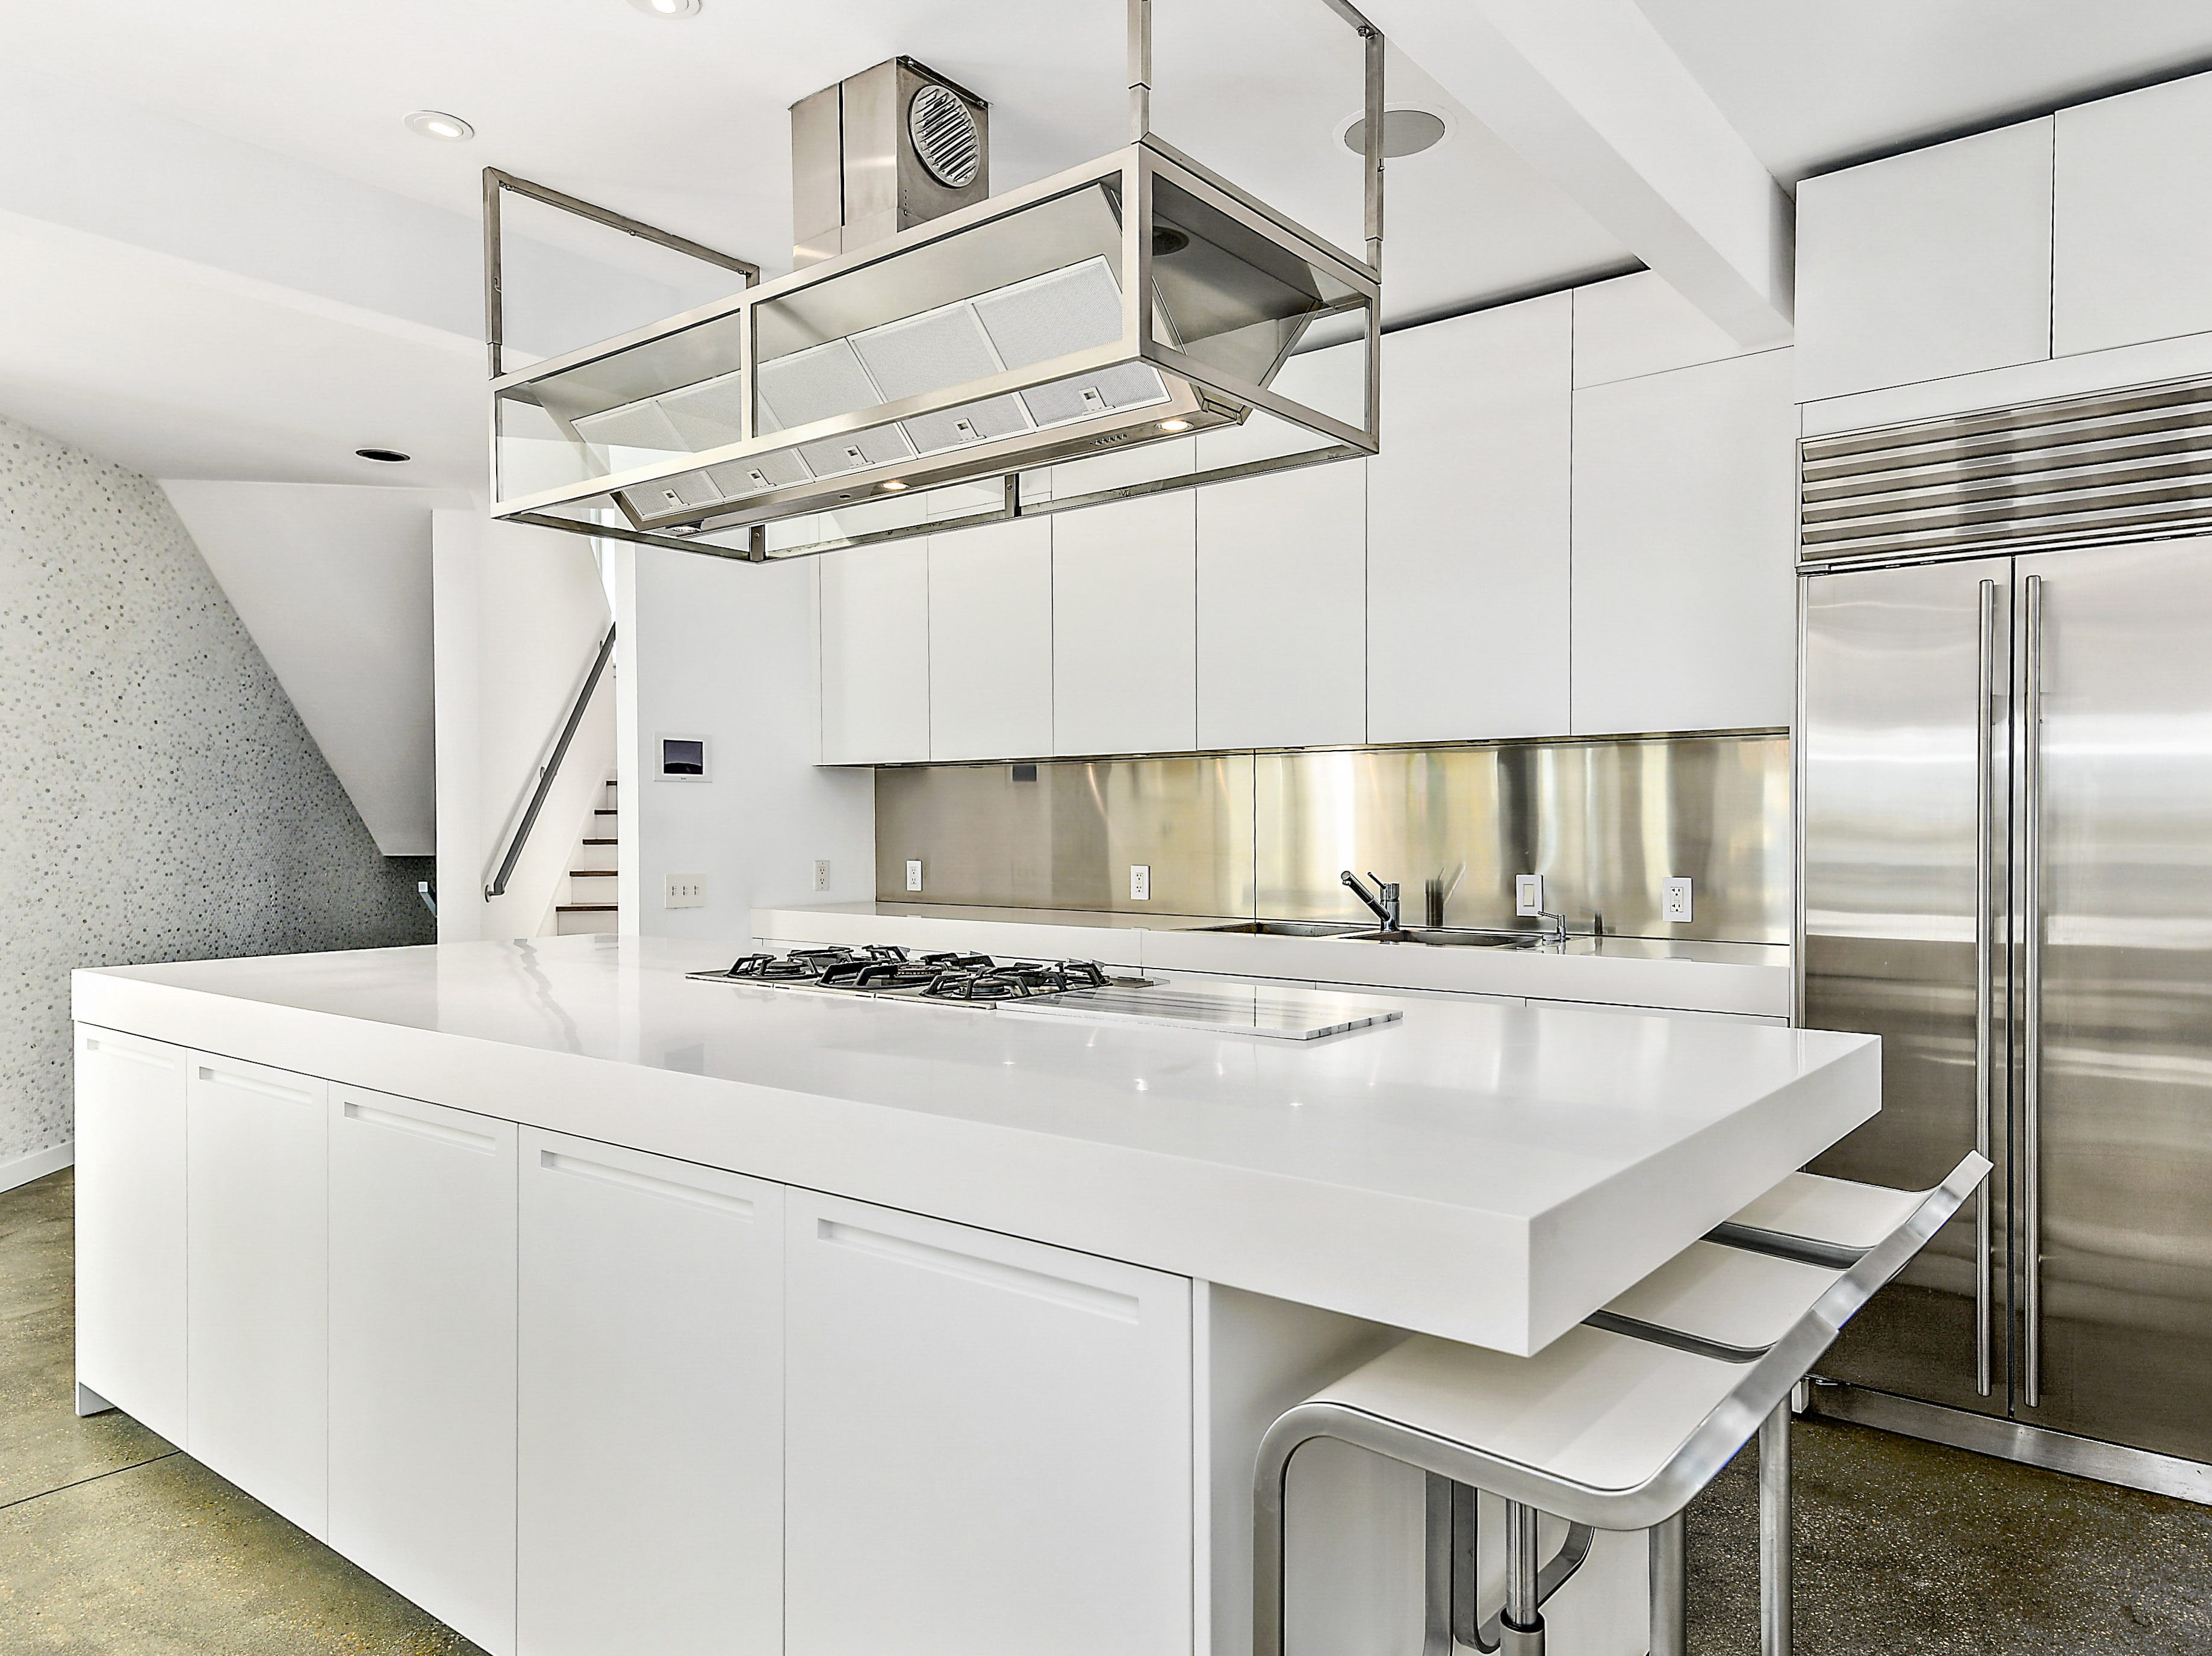 The kitchen of a five-bedroom home on Old Bridge Road in Ocean City that is listed for $3.6 million.